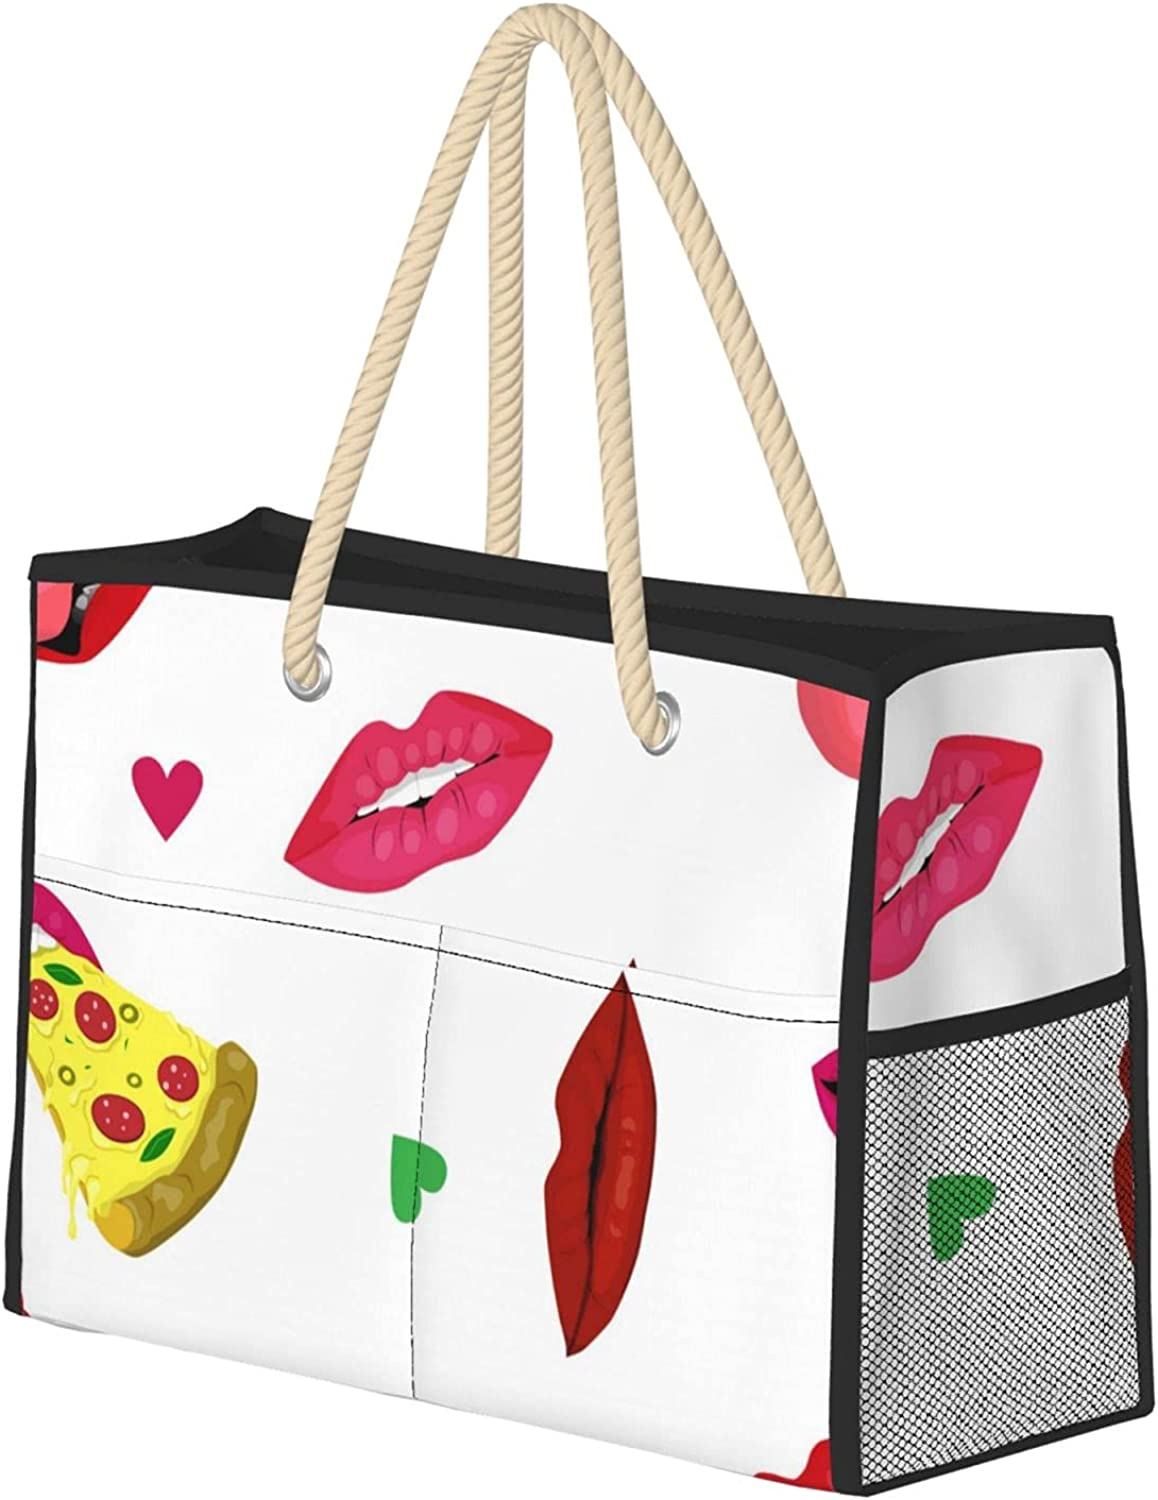 Attractive Female Mouth Women Store Beach Utility Ranking TOP6 Travel Tote Bag